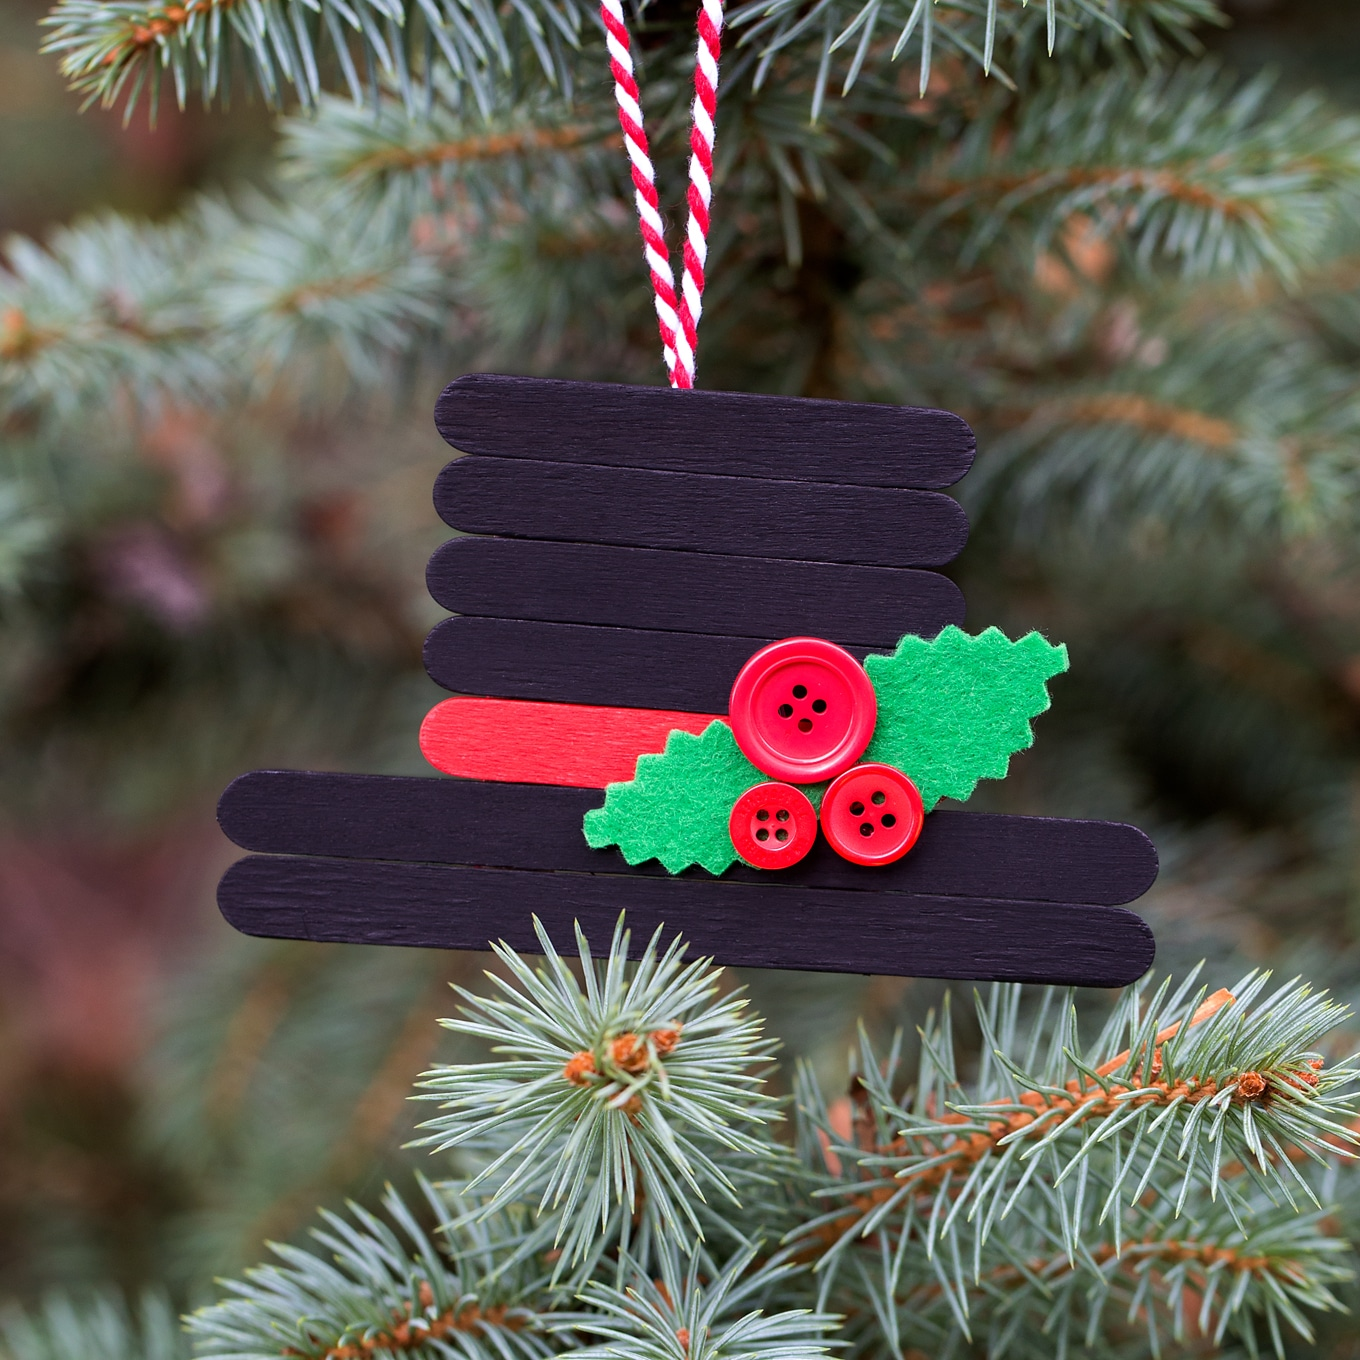 This creative Snowman Hat Ornament is a cute Christmas craft for kids!